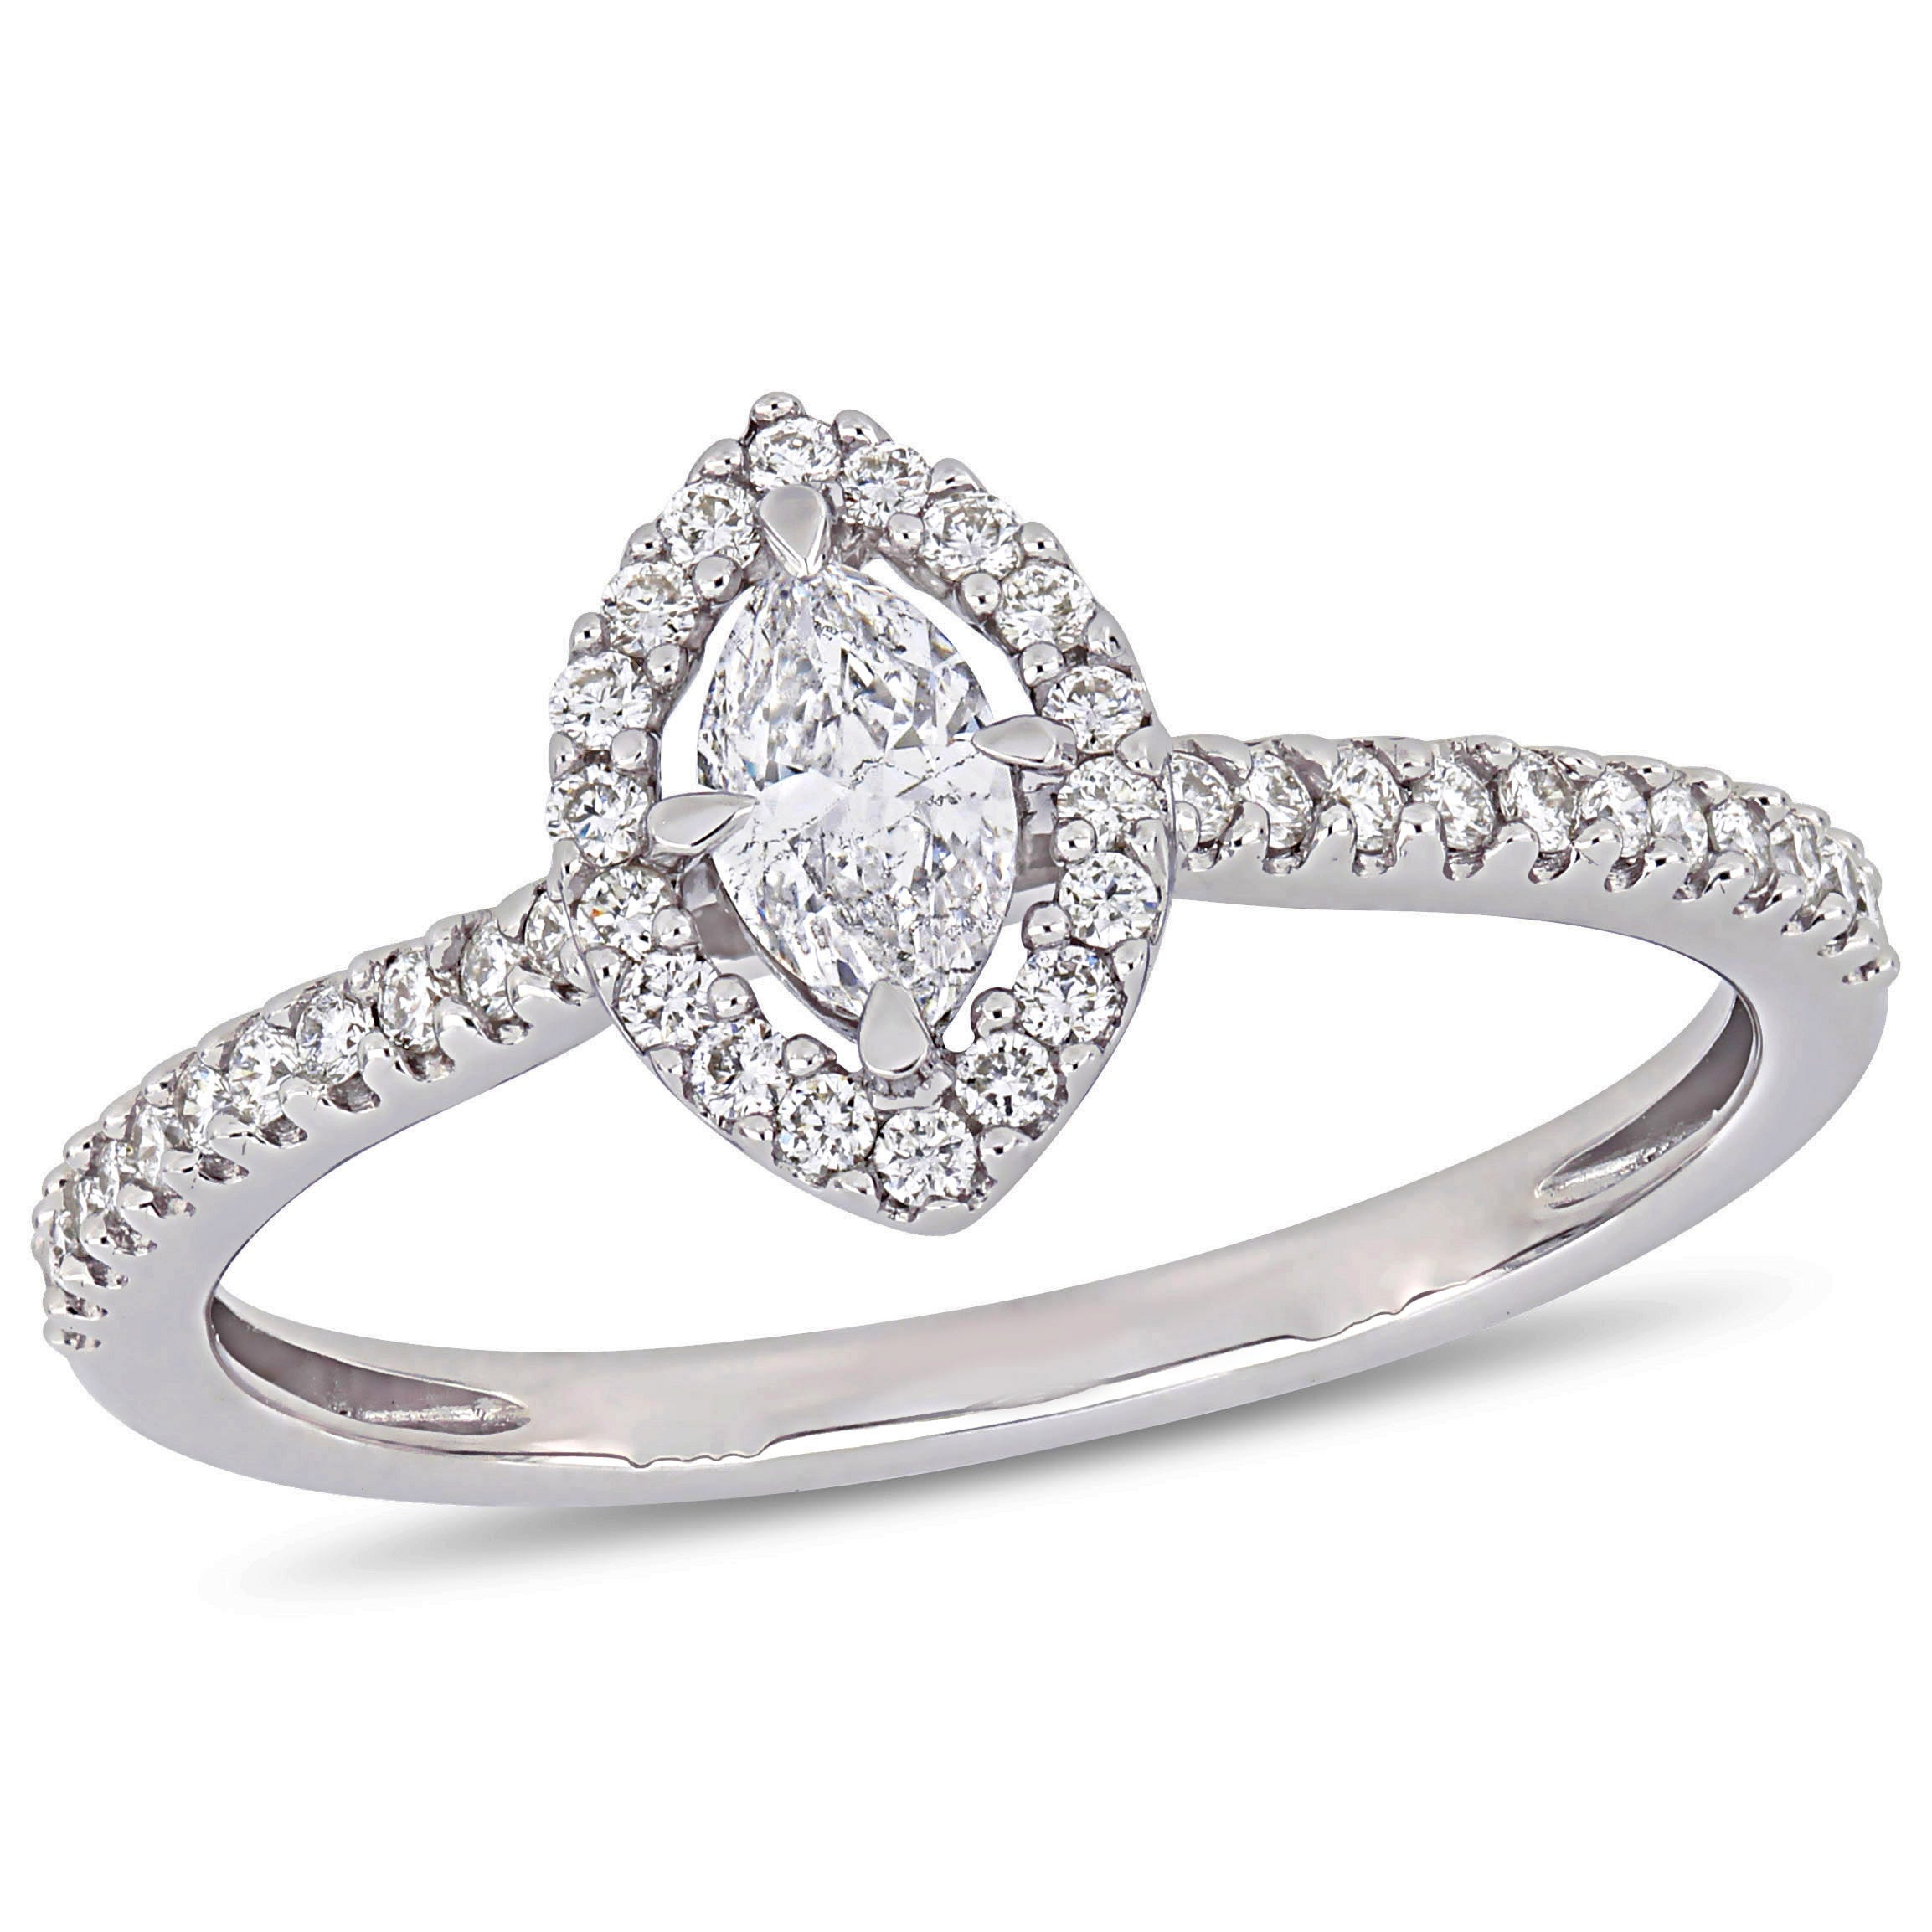 Marquise Diamond & Floating Halo ½ctw. Engagement Ring in 14k White Gold